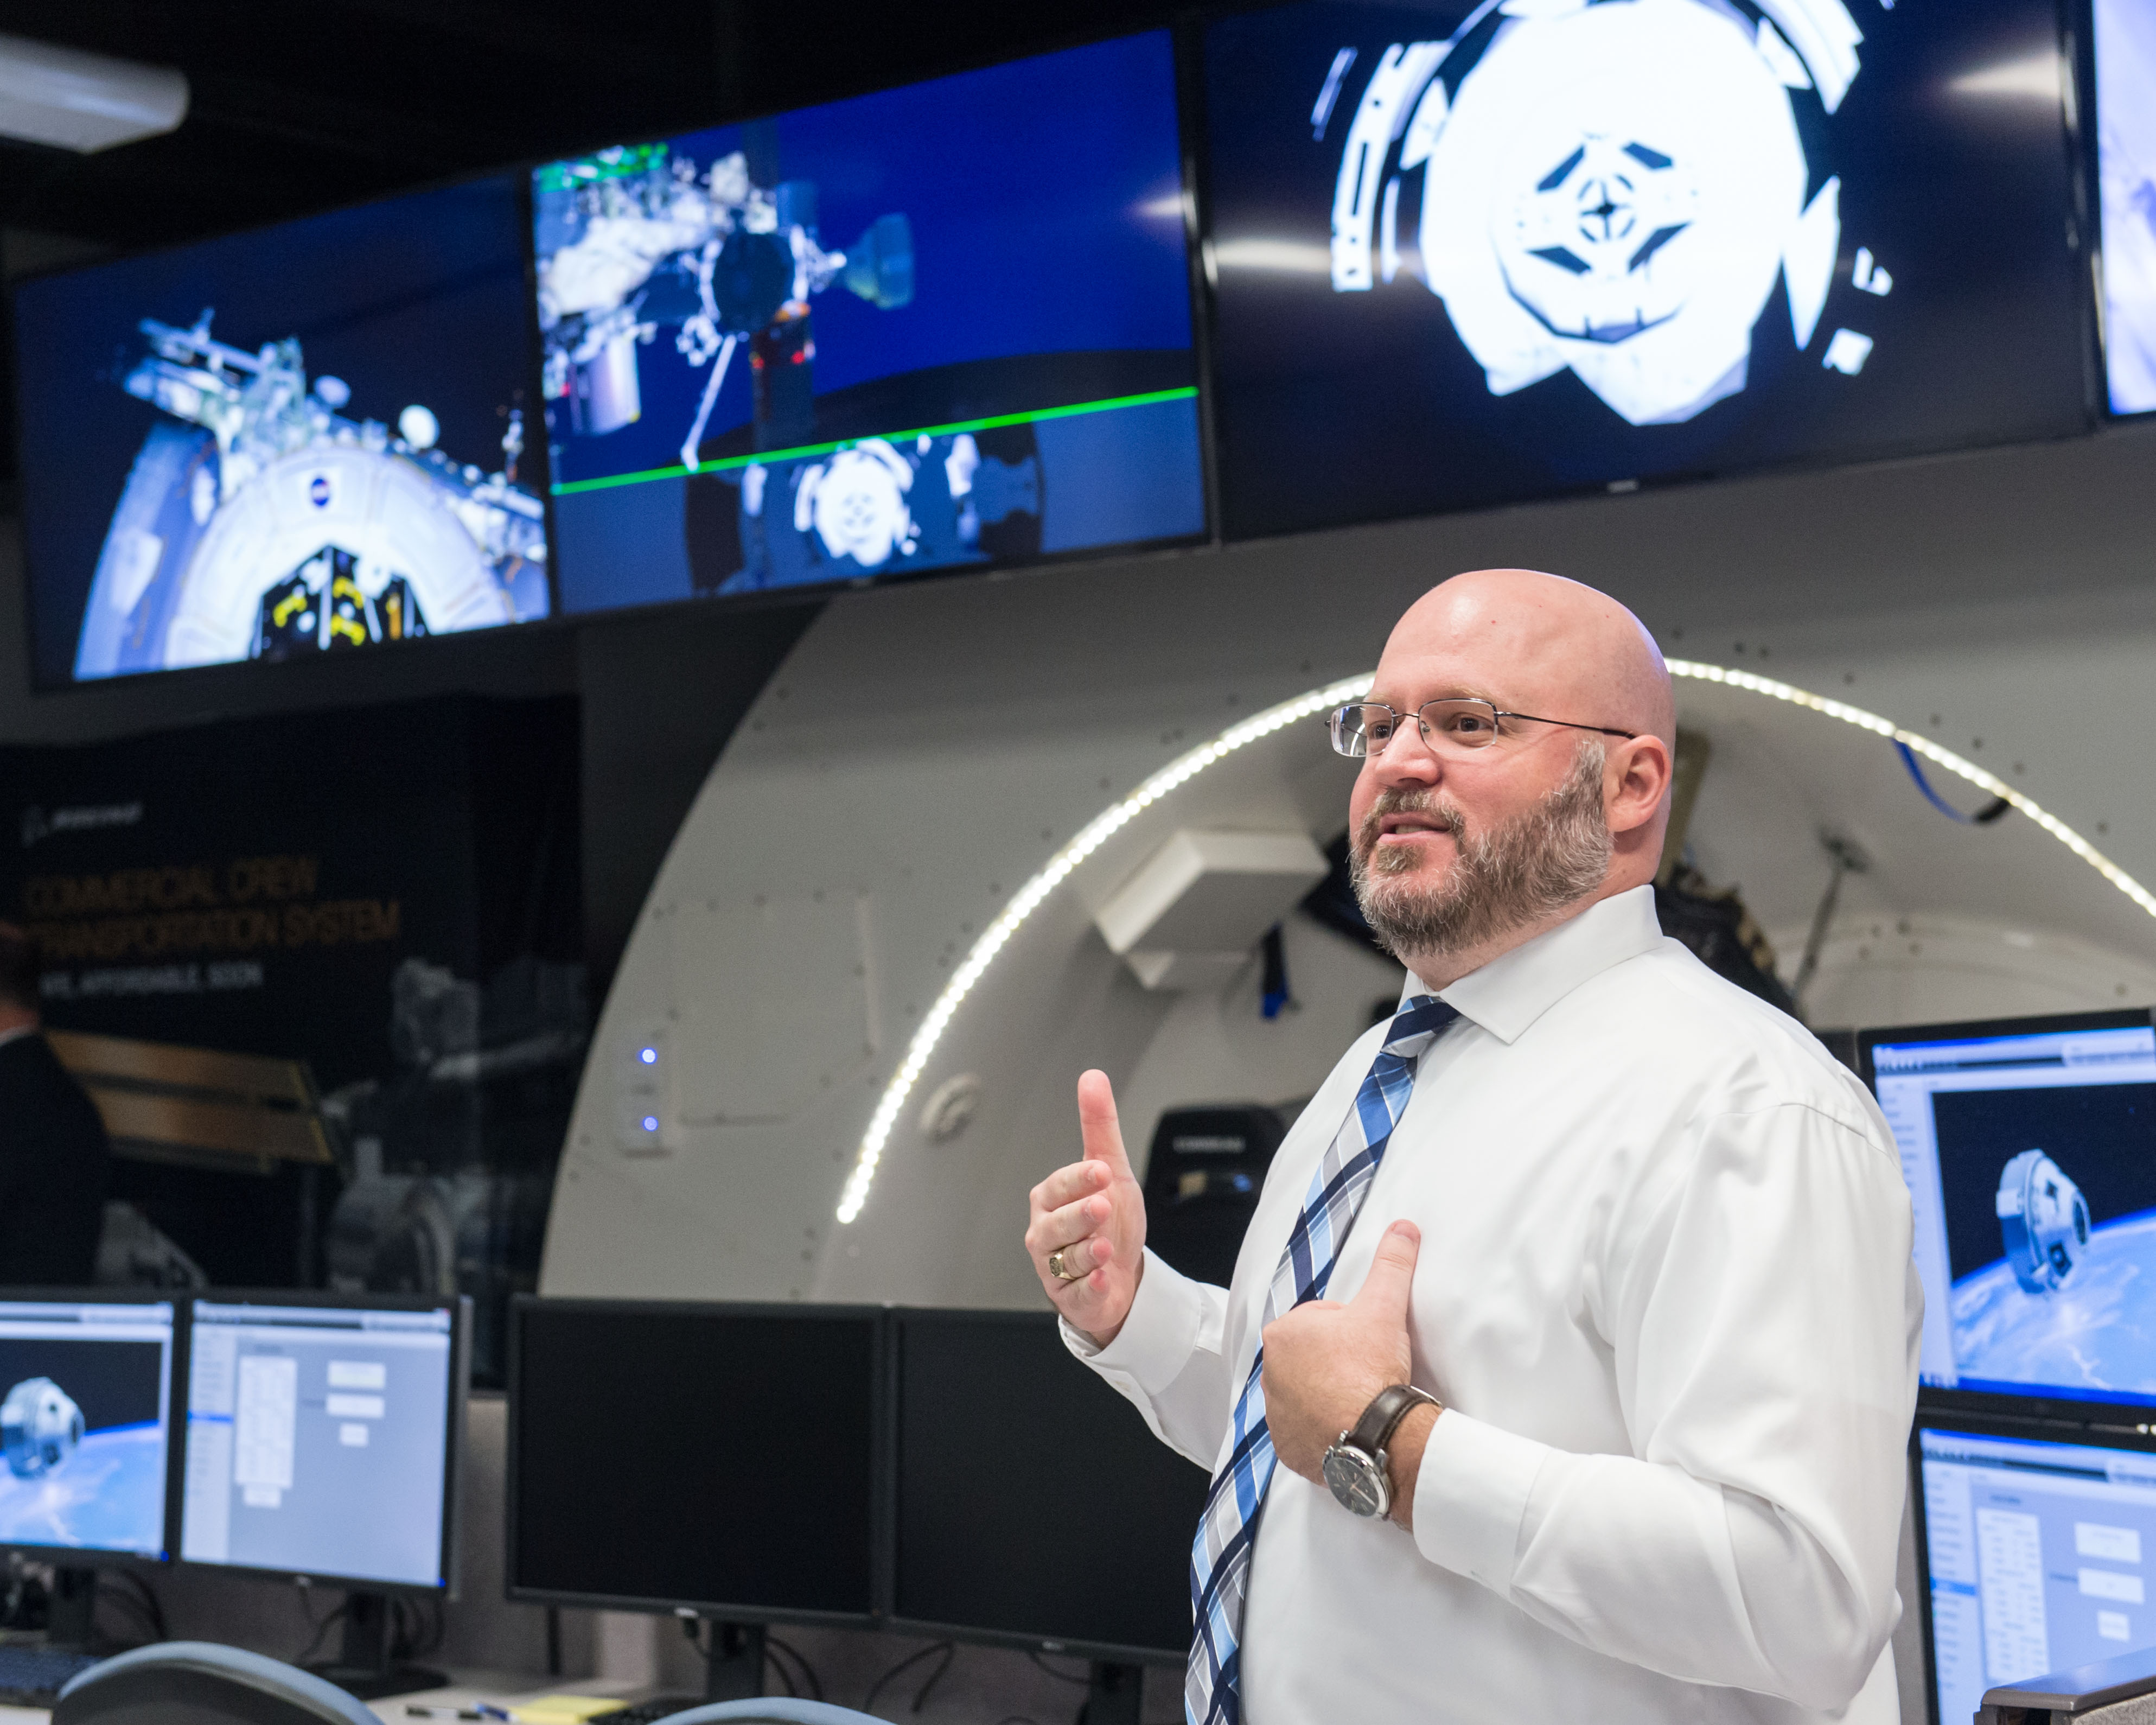 DATE: 6-21-16 LOCATION: 3700 Bay Area Blvd, Houston, TX 77058 SUBJECT: Boeing showing commercial crew training simulations and hosting a ribbon cutting ceremony for the Space Training, Analysis and Review (STAR) Facility. PHOTOGRAPHER: Lauren Harnett